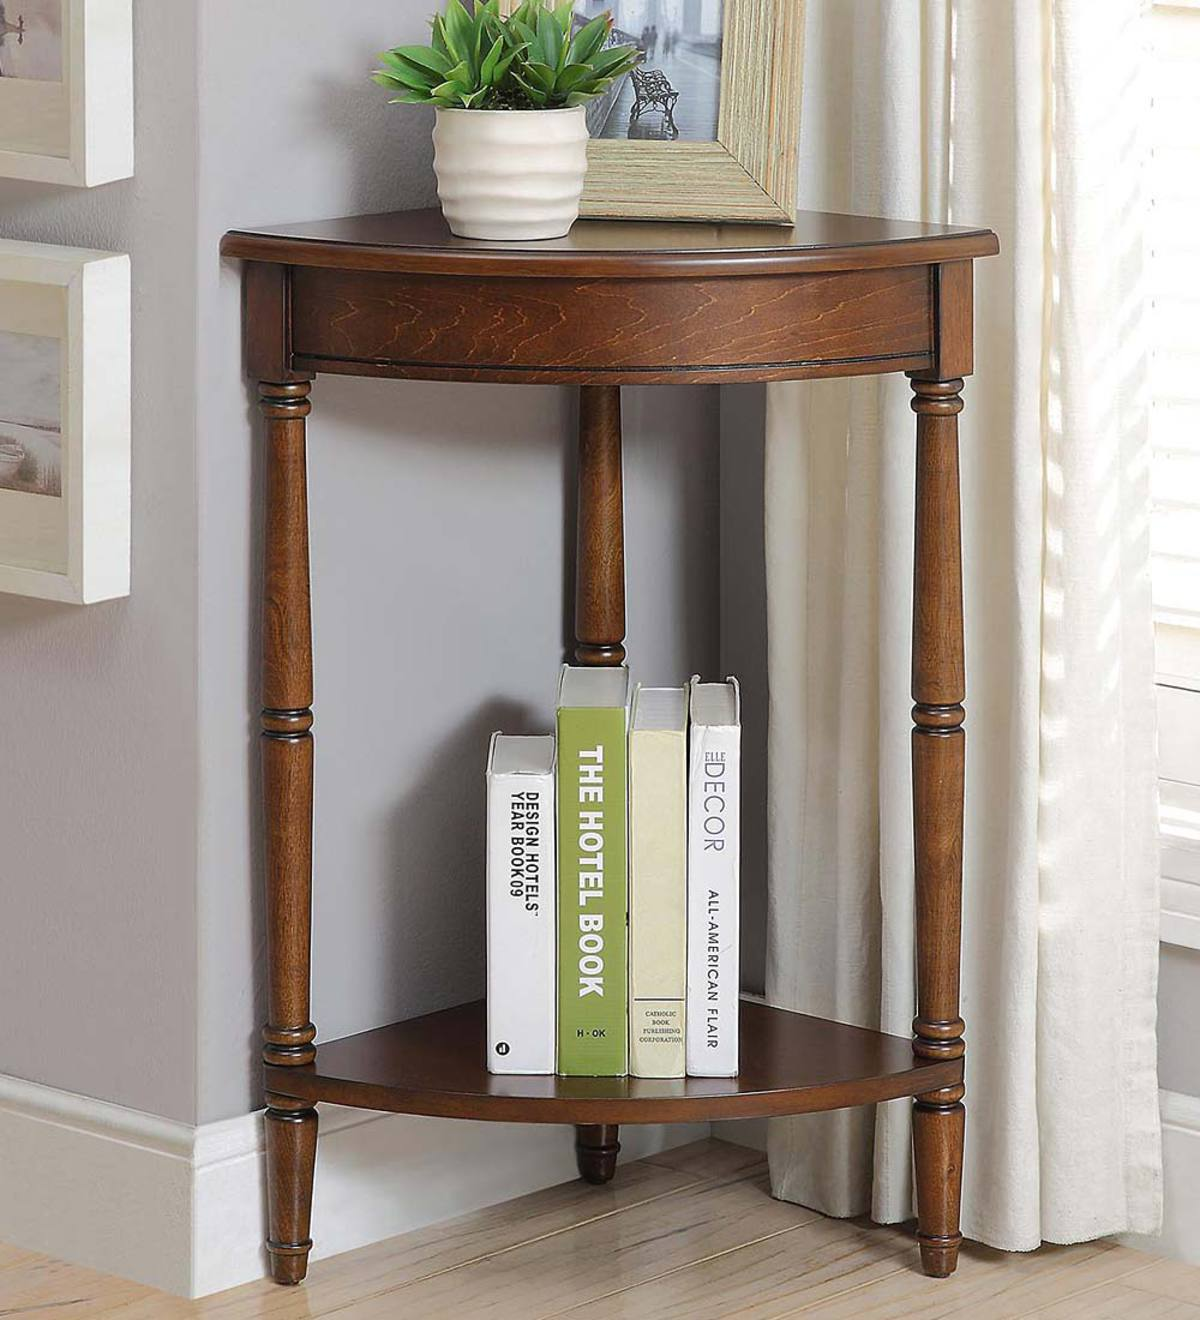 Corner Table/Plant Stand